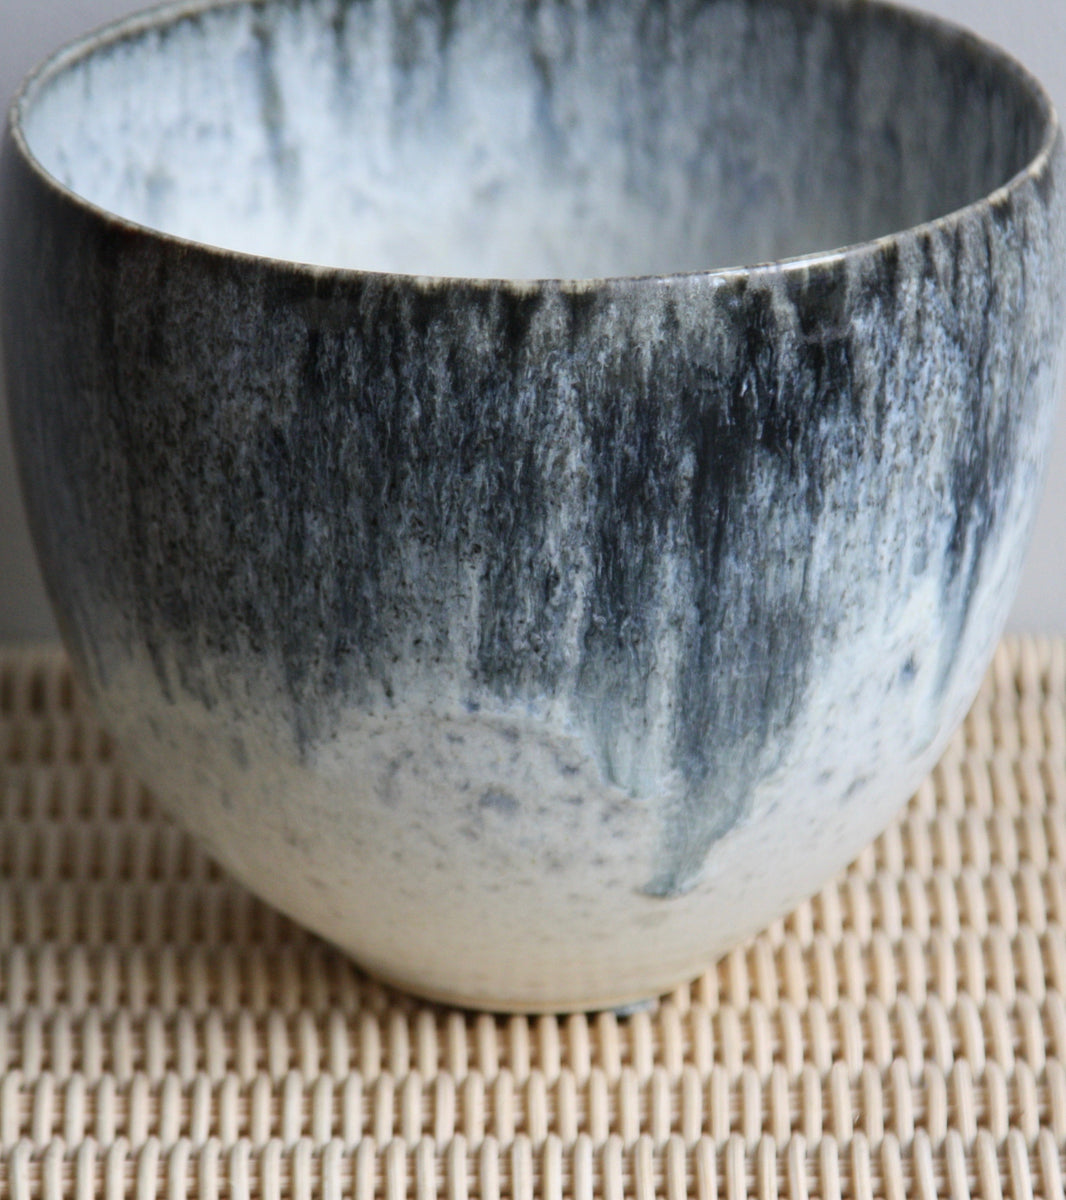 One Off Plant Pot Vase <br>in Blue & White Glaze  <br> by KH Würtz